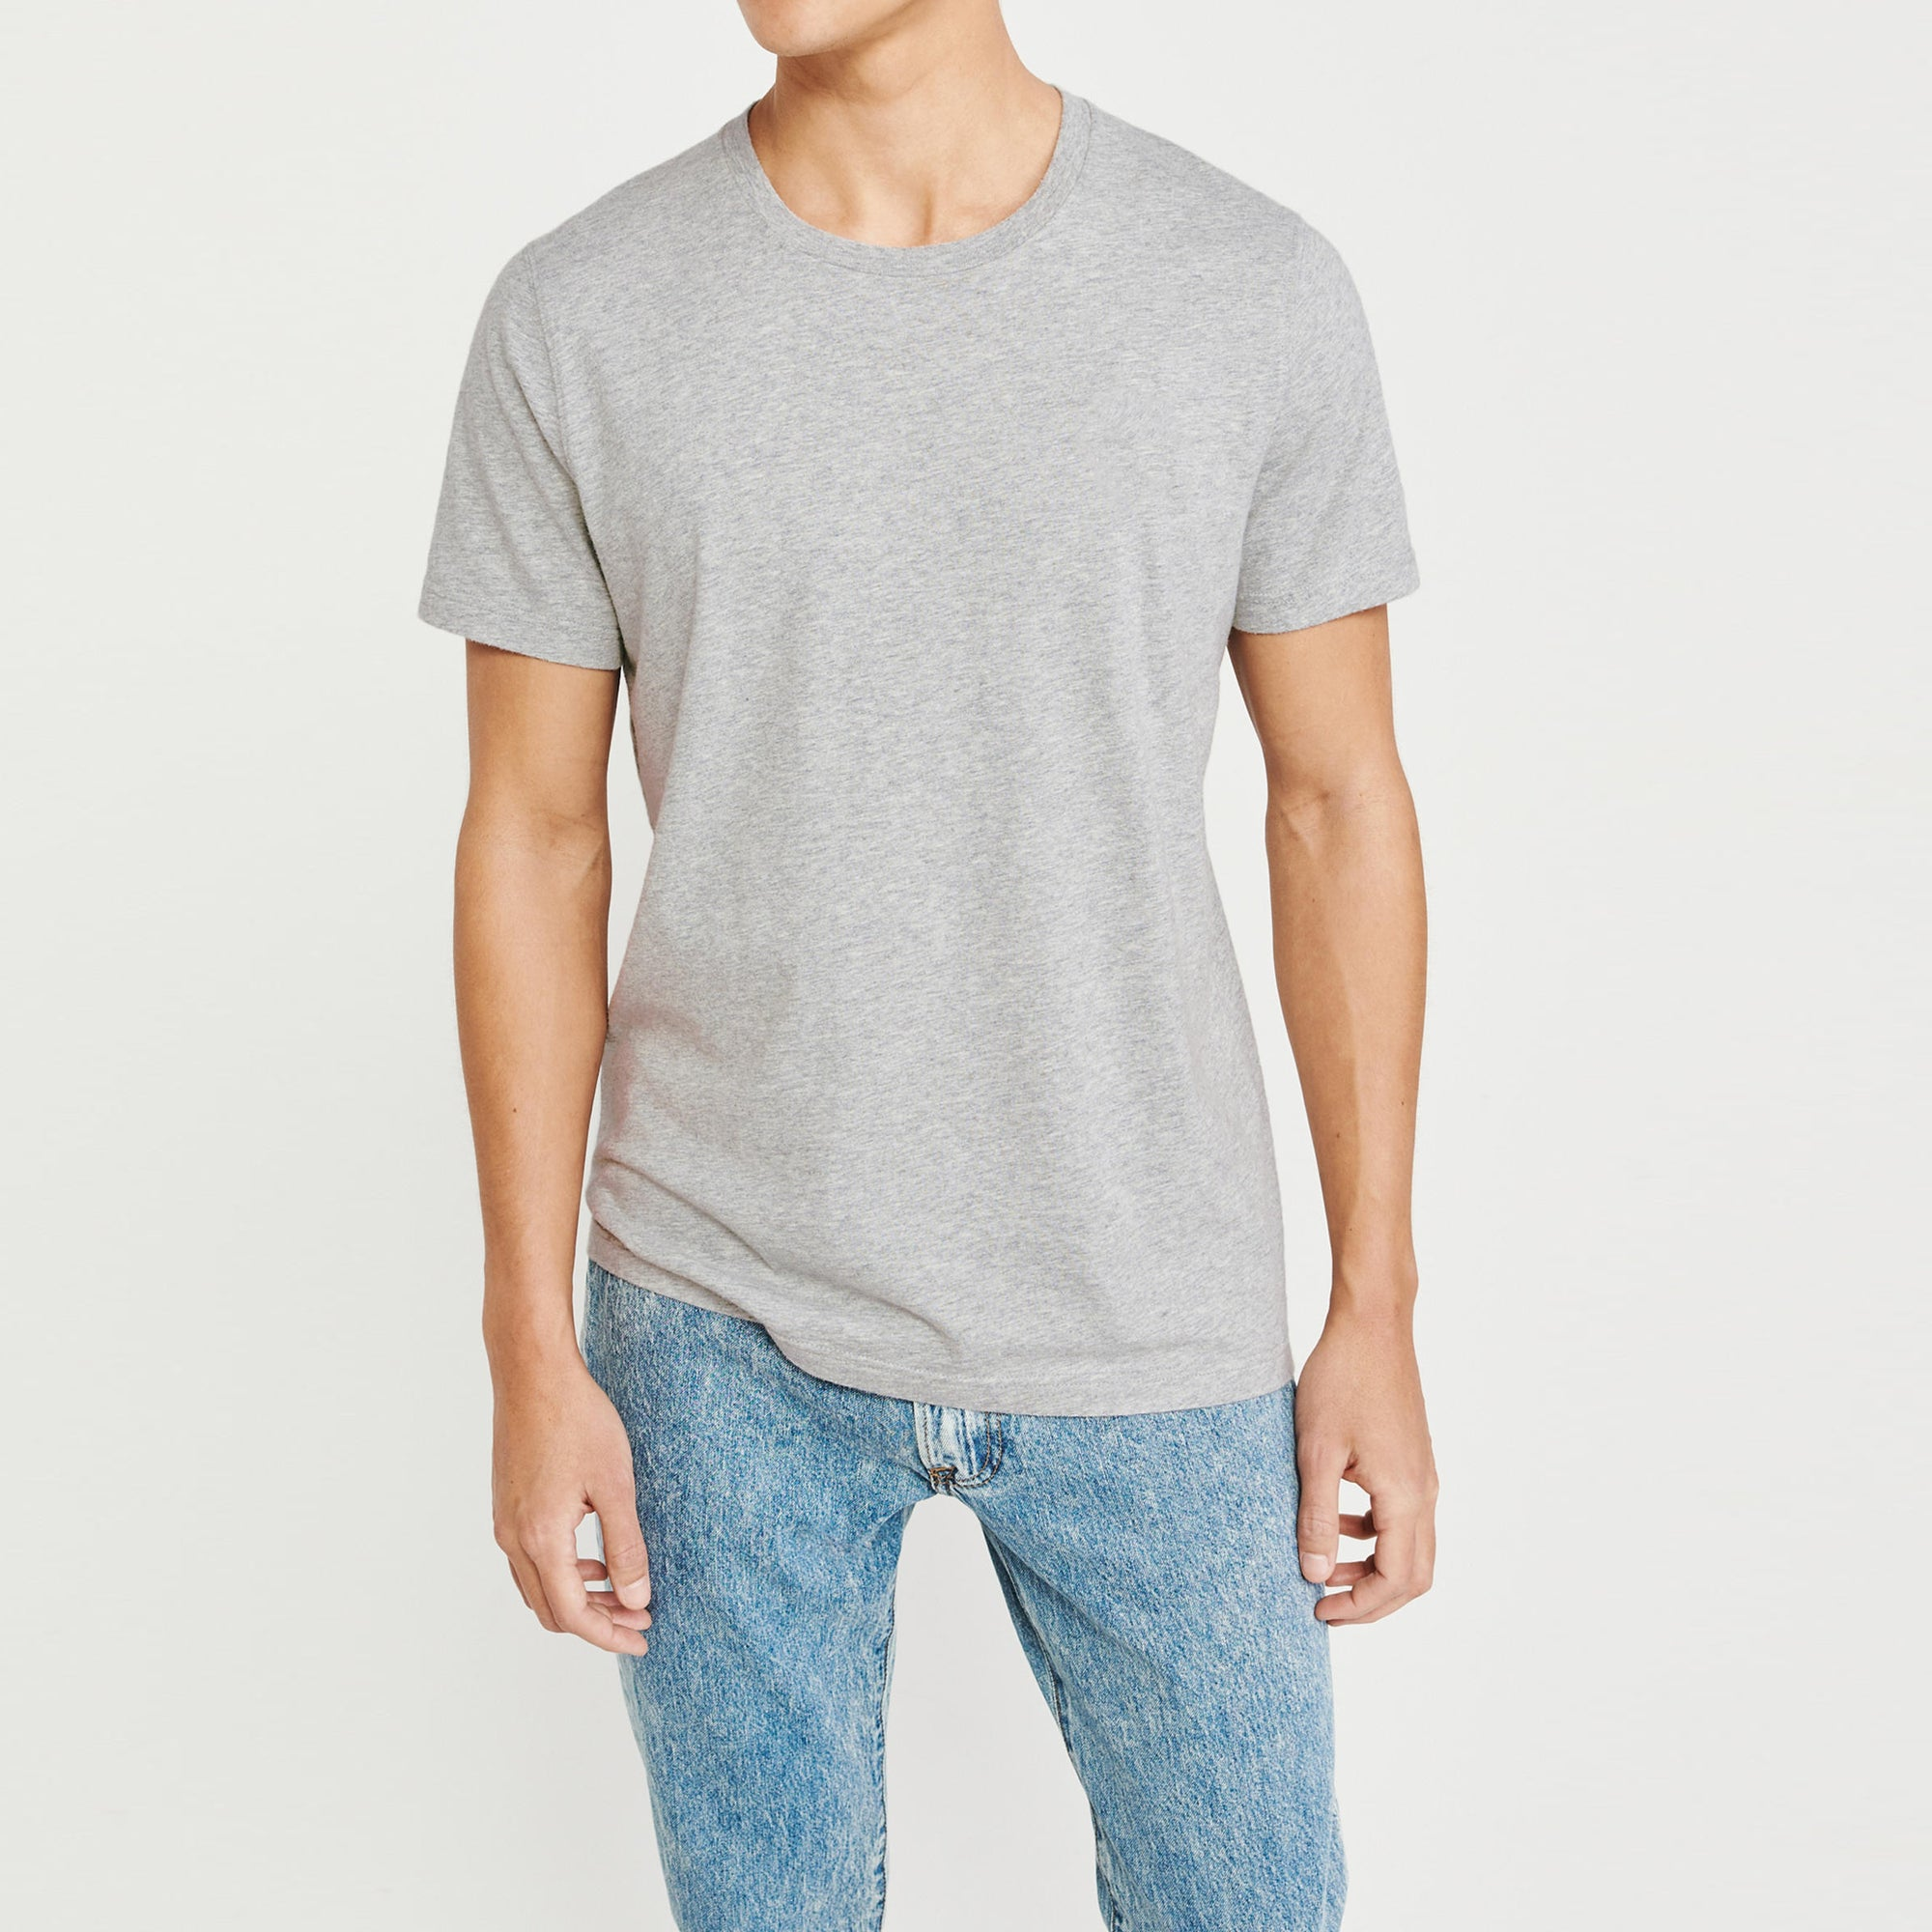 Beverly Hills Crew Neck Half Sleeve Tee Shirt For Men-Grey-NA8261